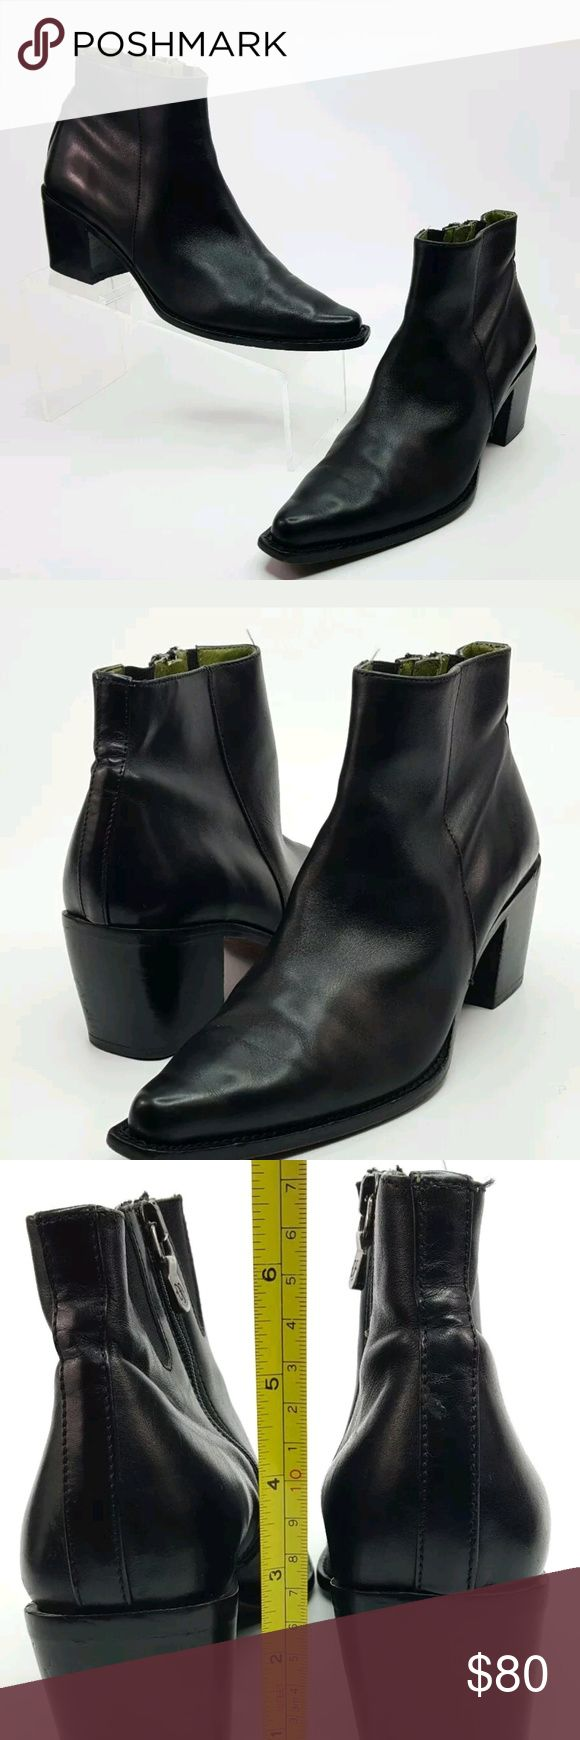 Donald J Pliner Ankle boot Tanith sz 7.5 Thank You For Shopping At Foxys Closet  Brand: Donald J Pliner  Description: Women's Black Leather Pointed Ankle Boot Tanith western Tip By Donald J Pliner  Color: Black  Style: Ankle Boot  Size: 7.5  Heel: Block  Condition: In Great Condition Some Wear on soles, Upper has some Scuffs  Accesories Not Included  Please See All Images Donald J. Pliner Shoes Ankle Boots & Booties